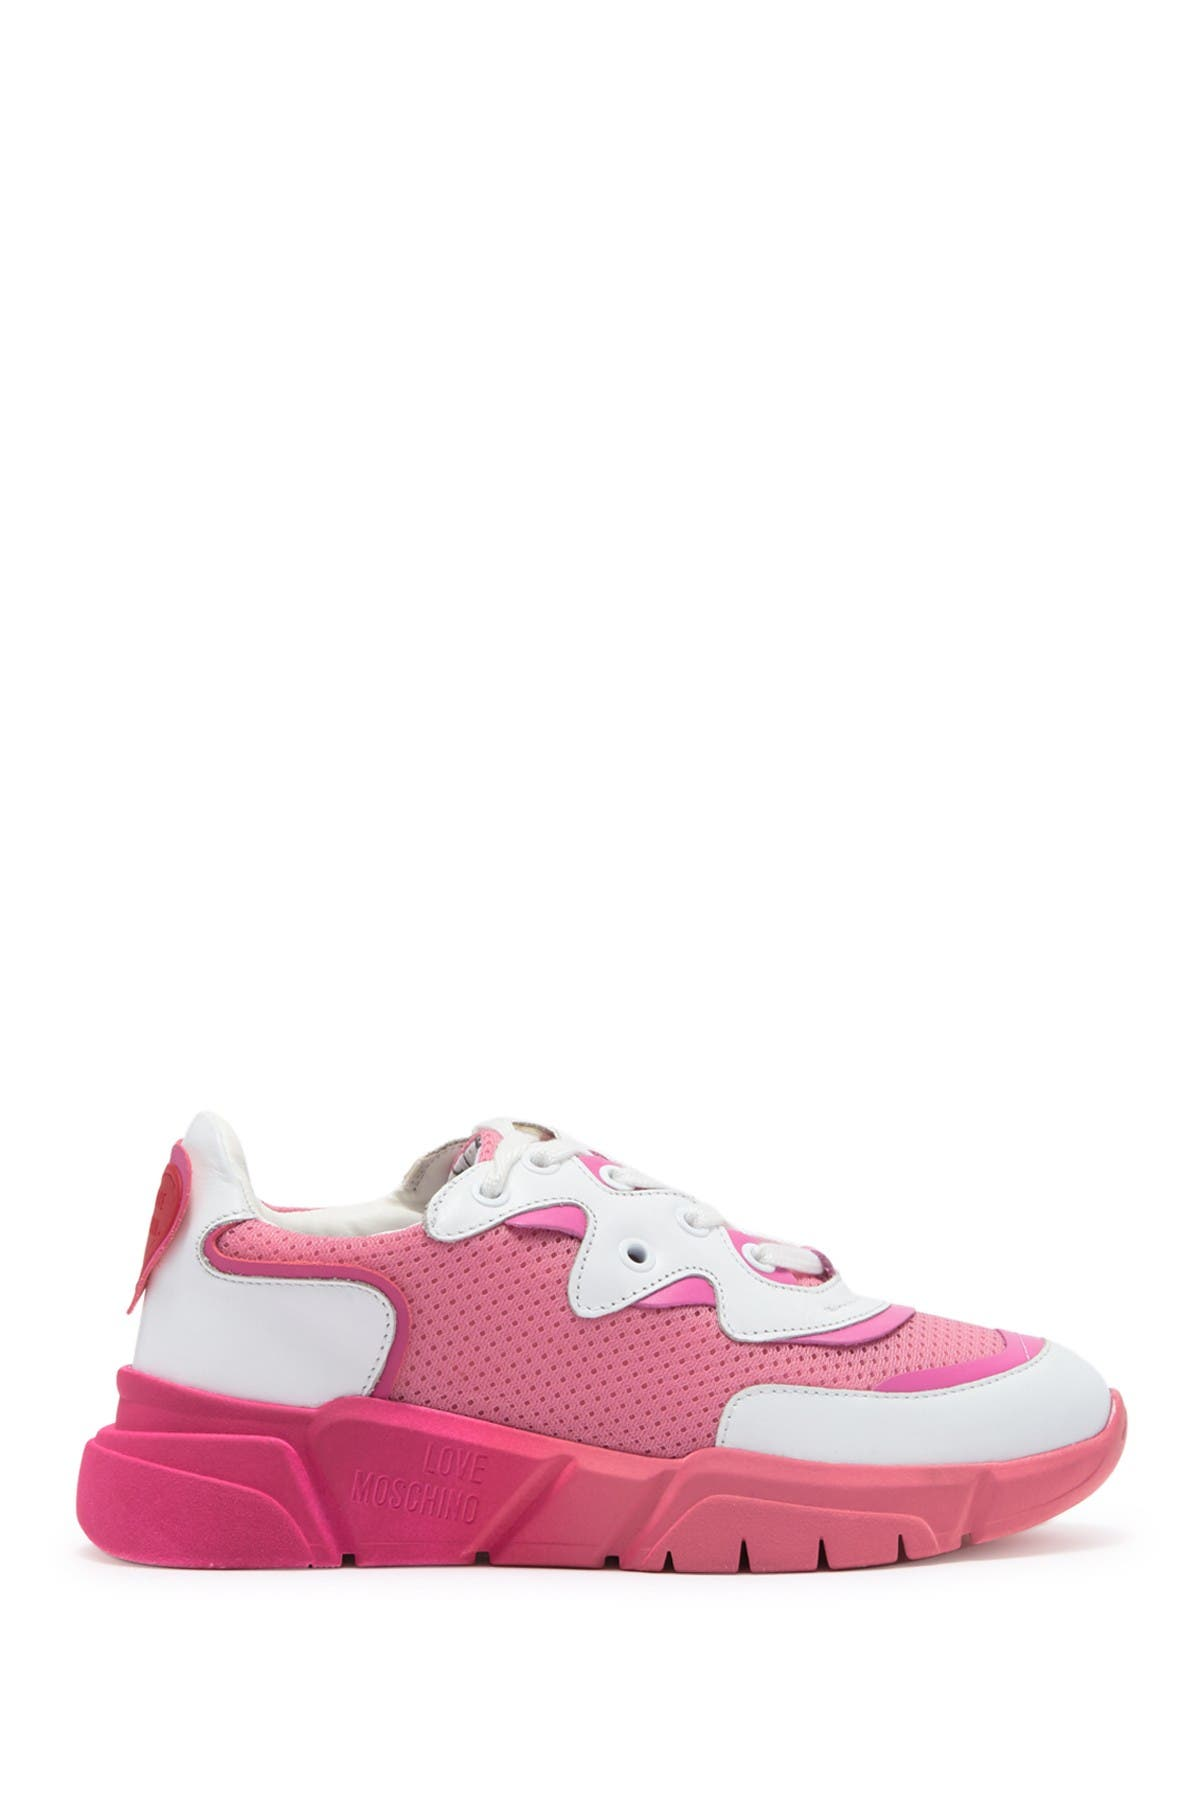 Image of LOVE Moschino Perforated Fashion Sneaker